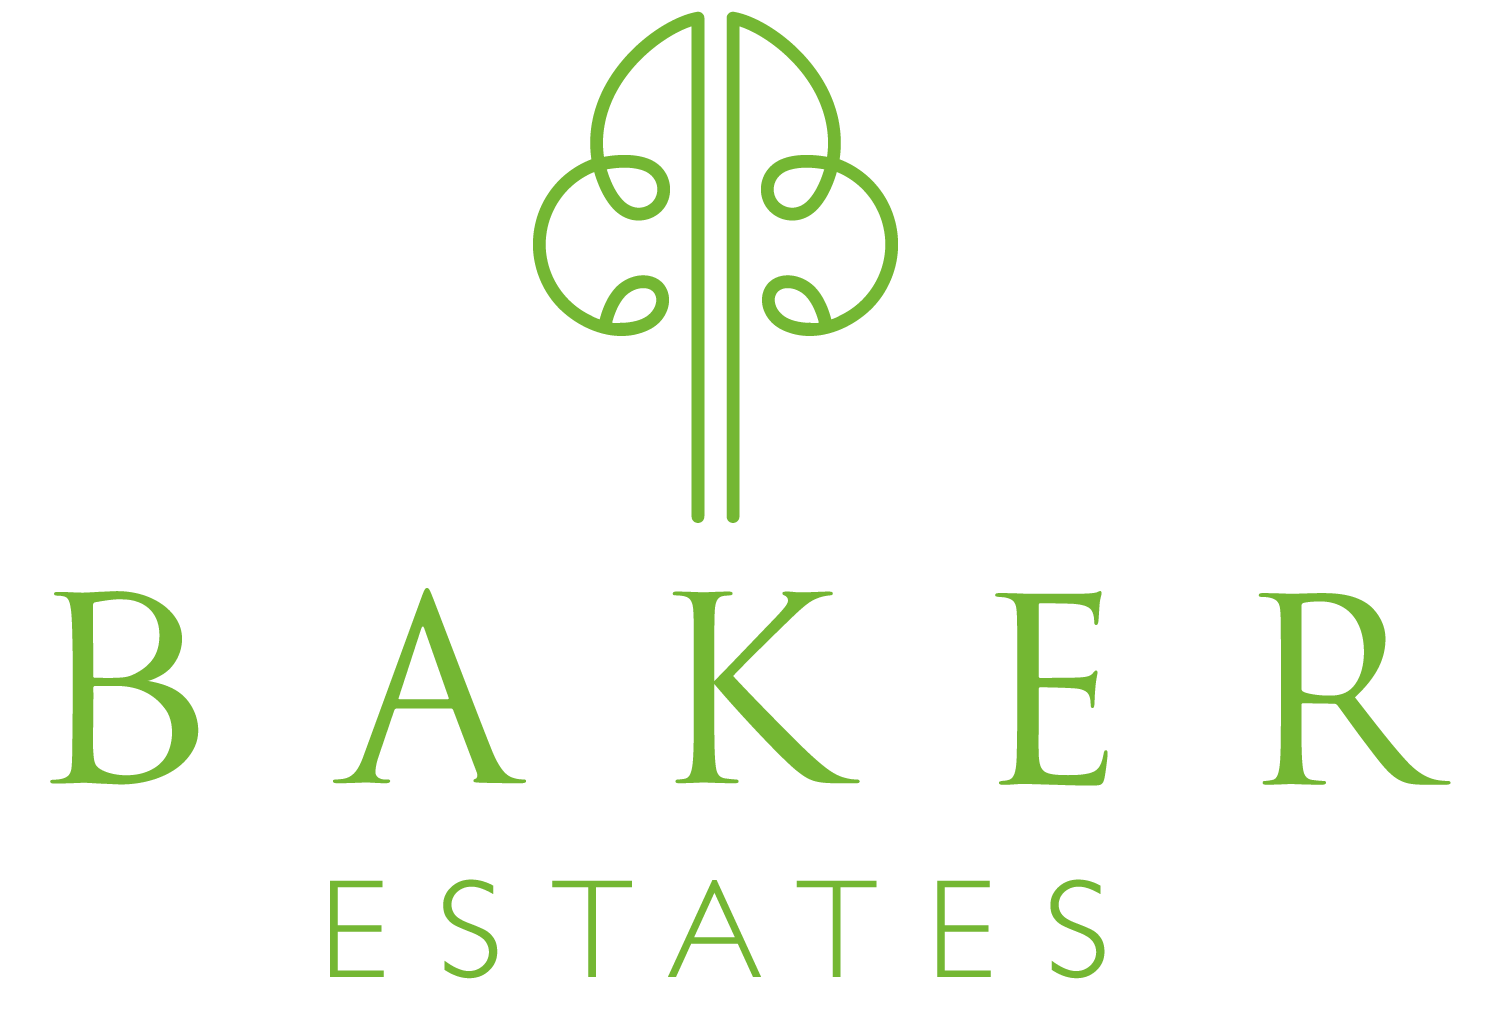 We would like to welcome Baker Estates